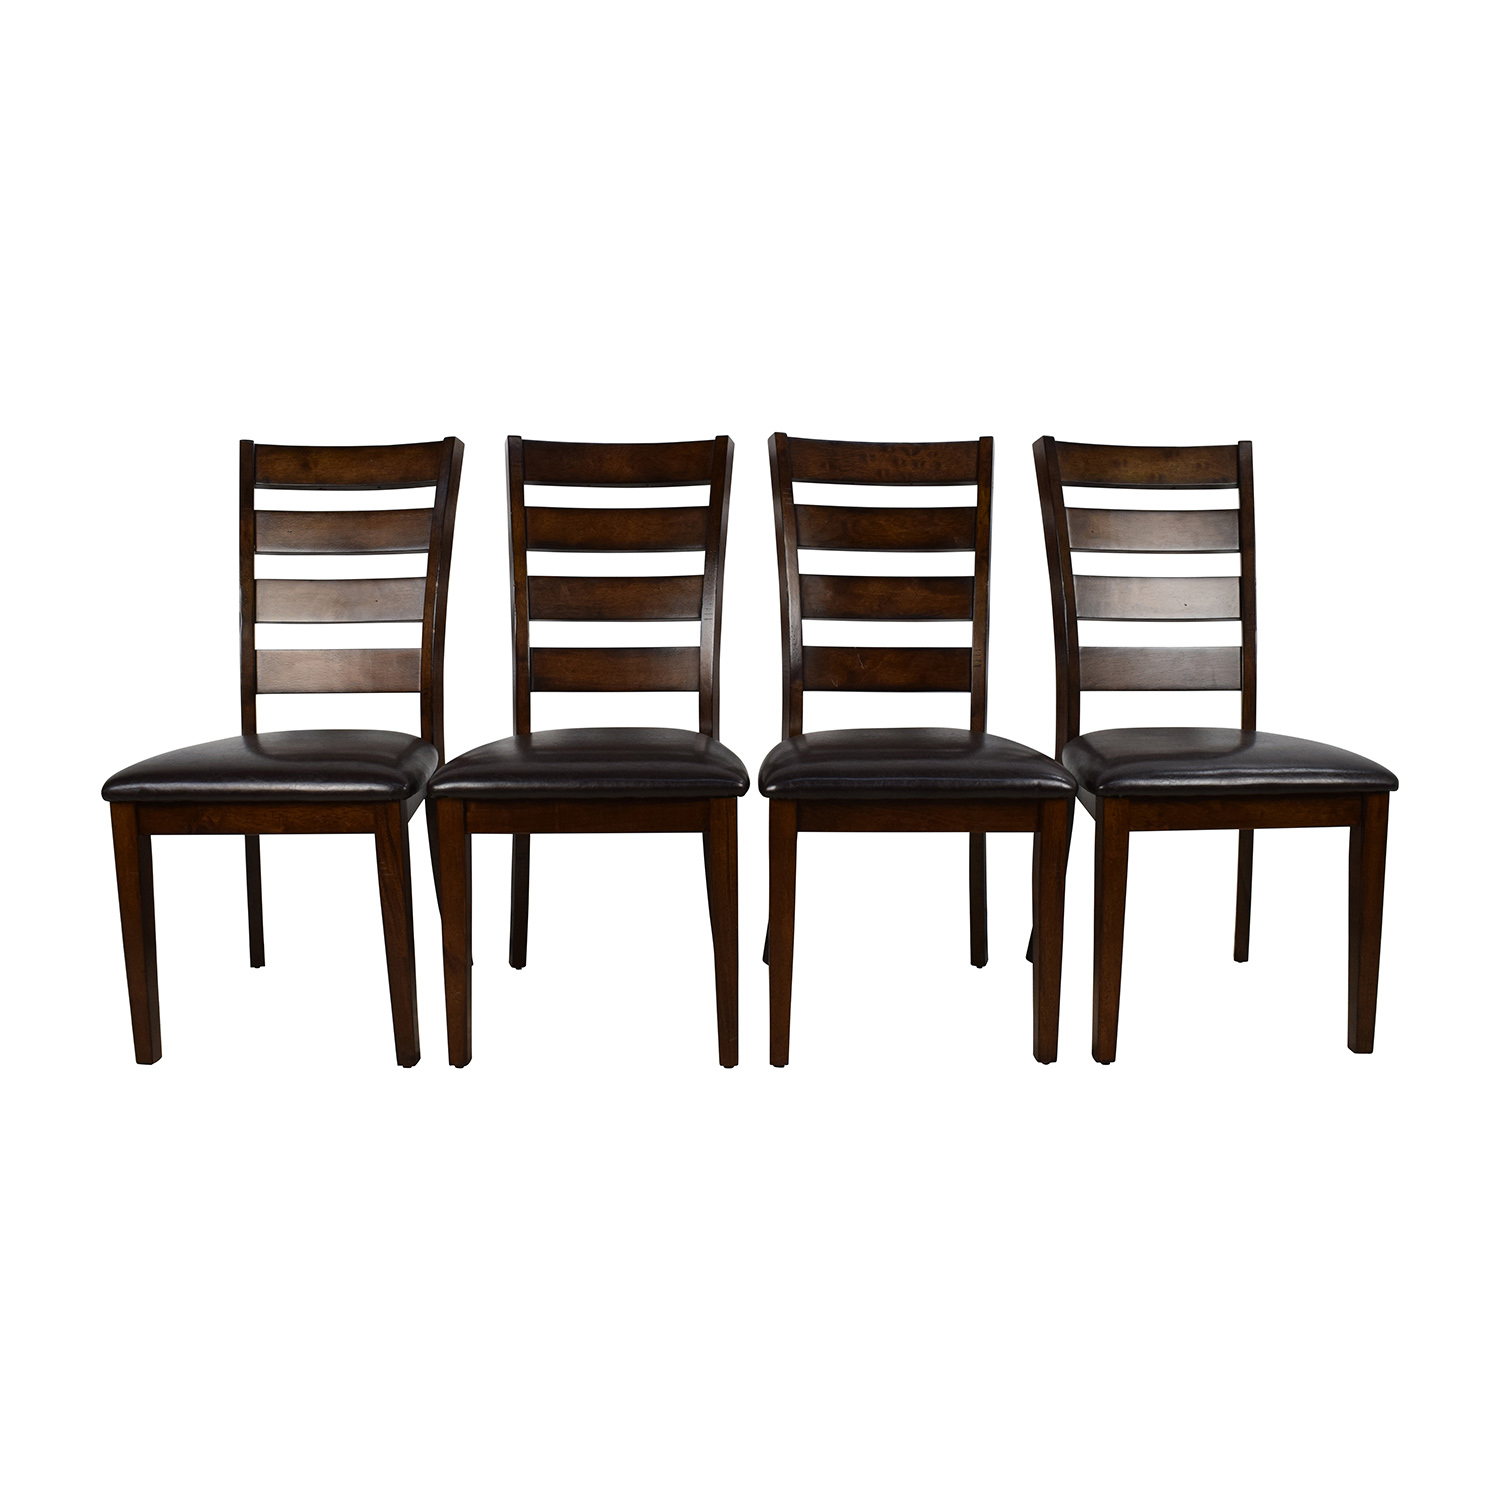 62 Off Raymour Flanigan Raymour Flanigan Kona Dining Chairs